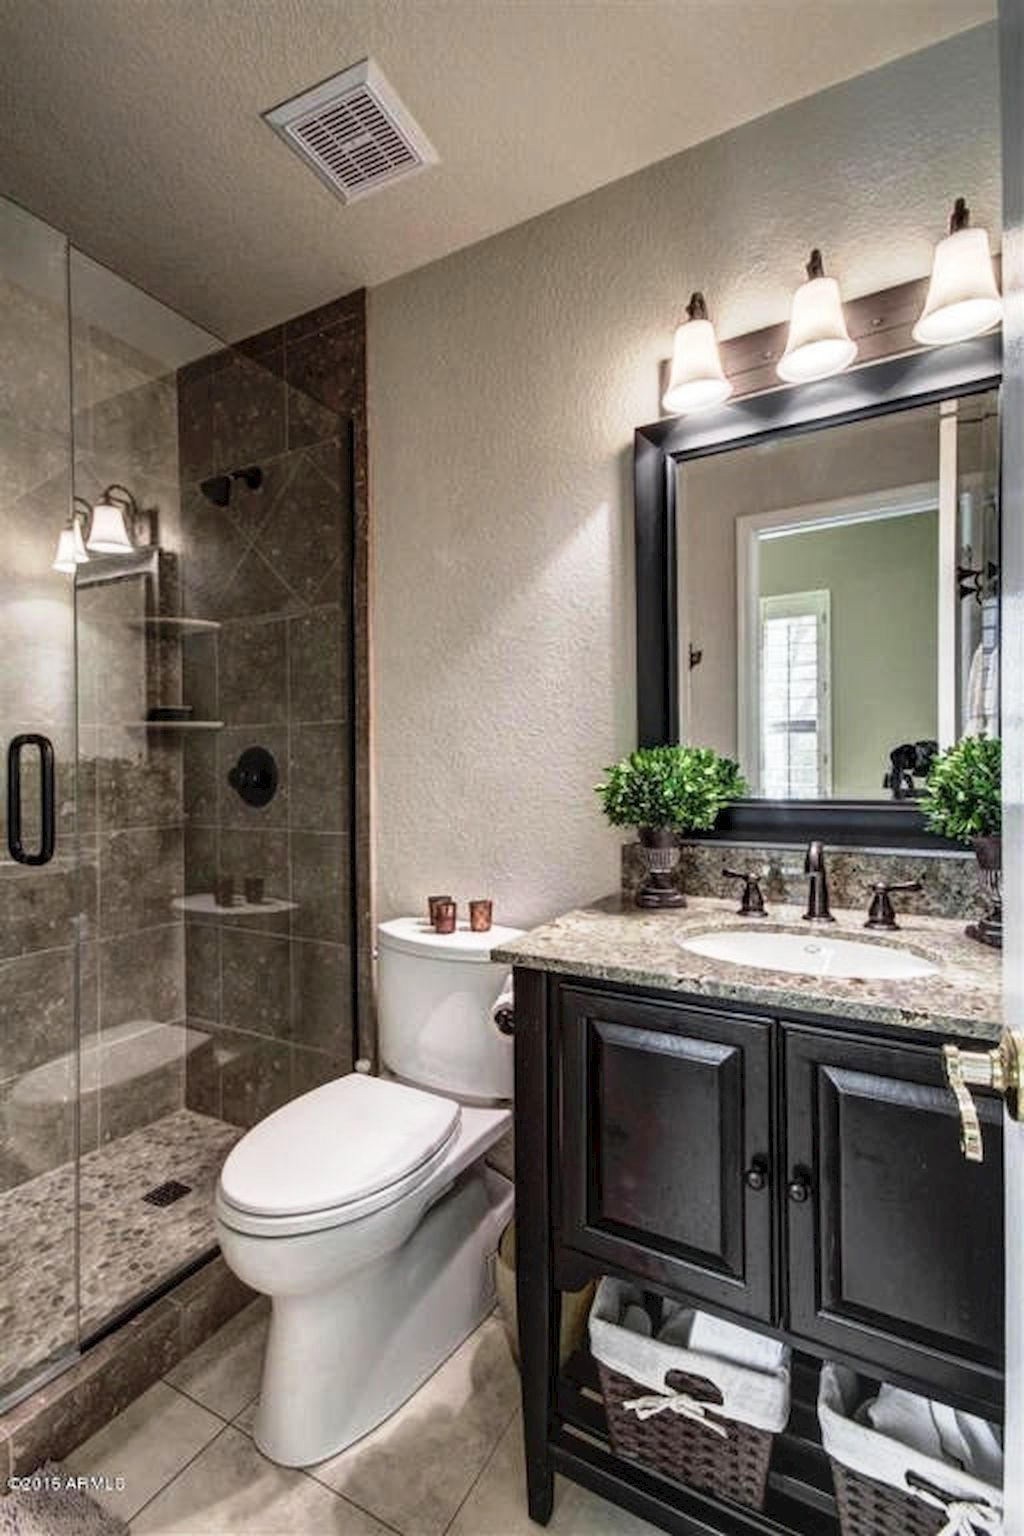 How to Use Low Budget to Remodel Small Master Bathroom ...